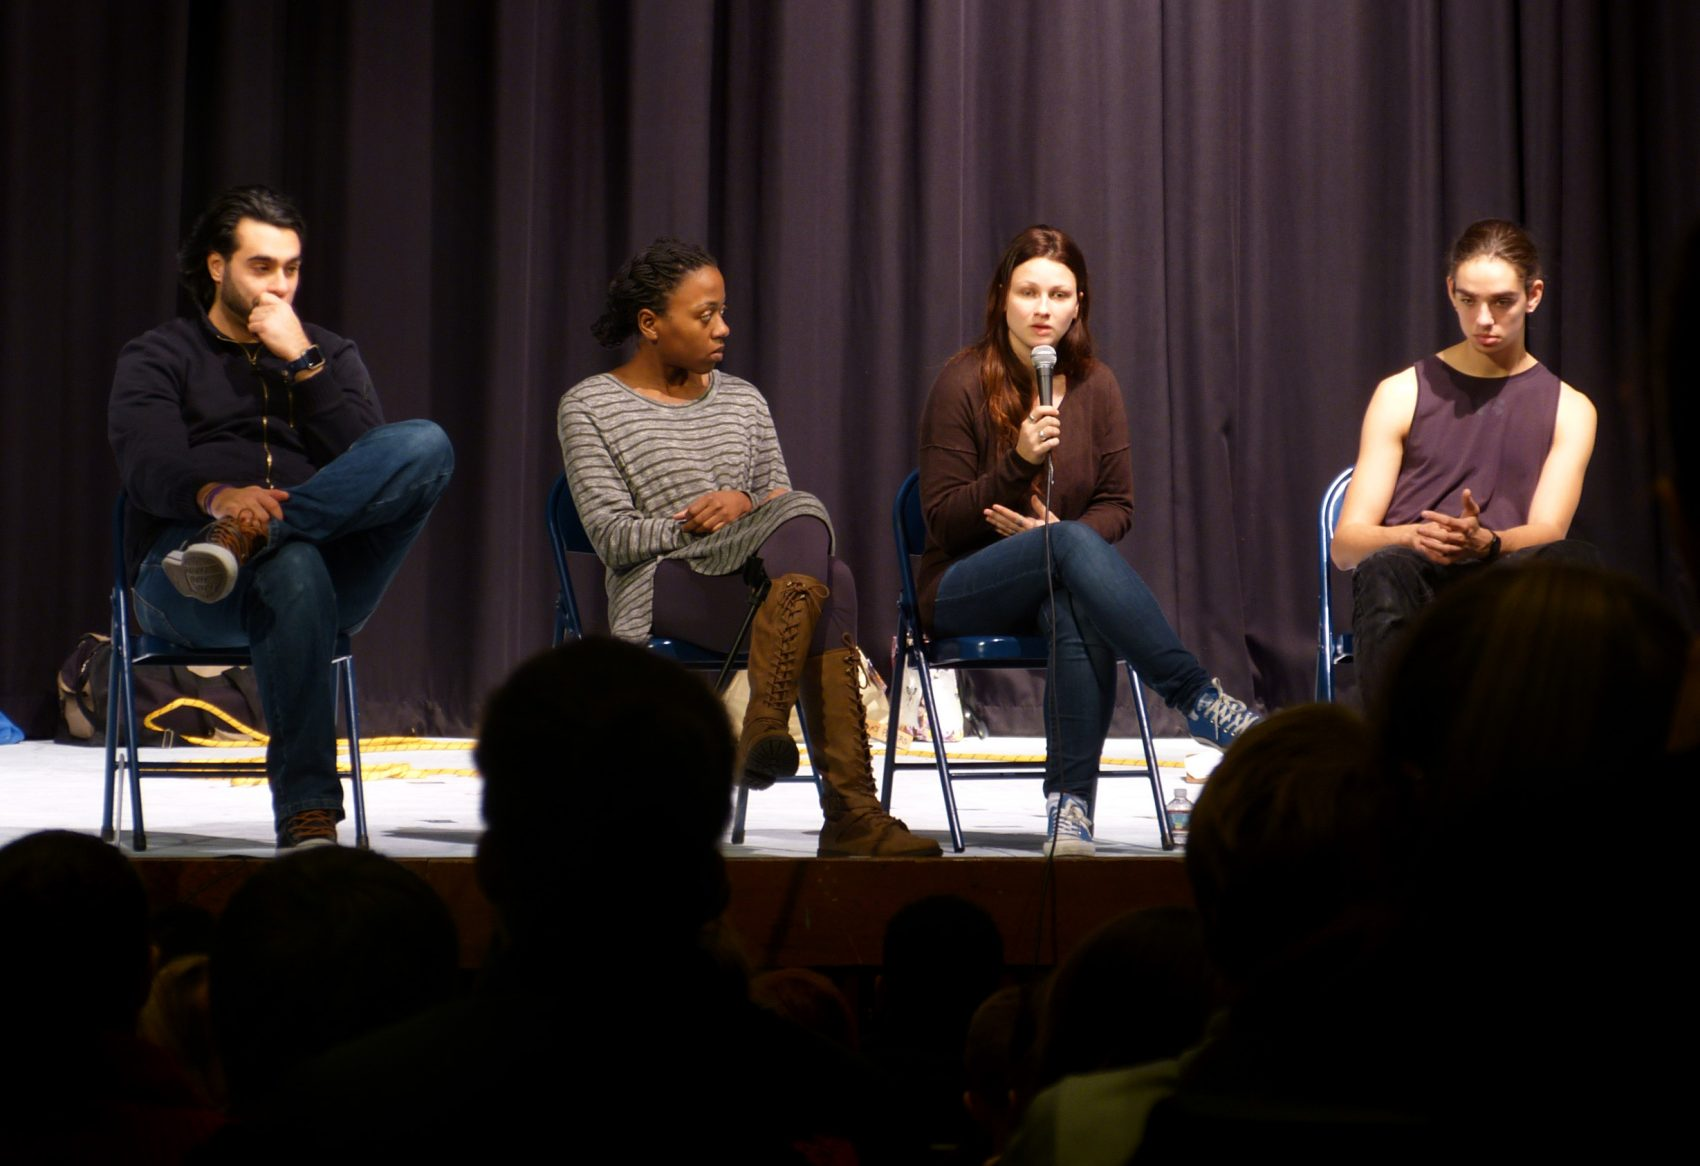 Actors Elie Saroufim, Elizabeth Addison, Abby E. and Jon R. (some of the players did not want their last names used in this story) on stage at Triton Regional High School. (Courtesy Lynn Bratley/The Improbable Players)